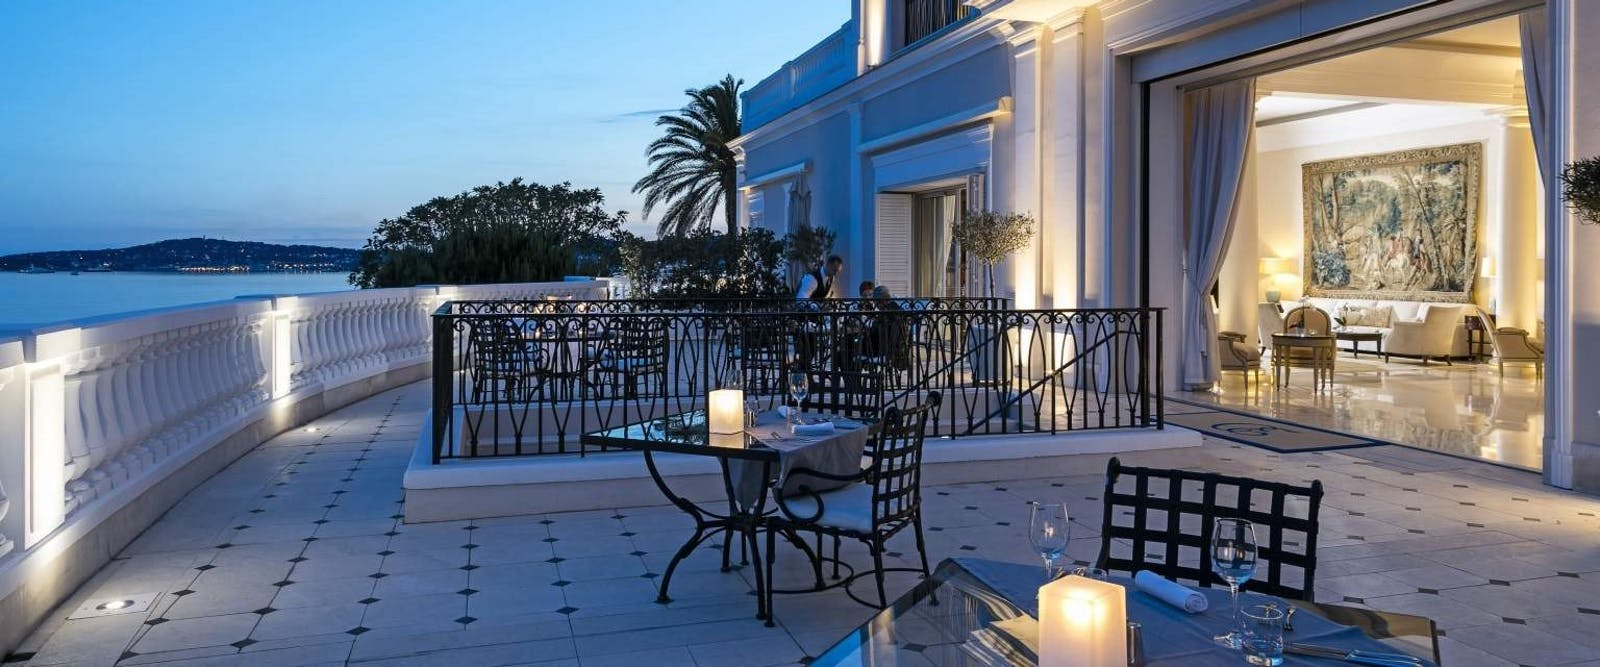 Terrace Dining Area at Cap Estel, French Riviera